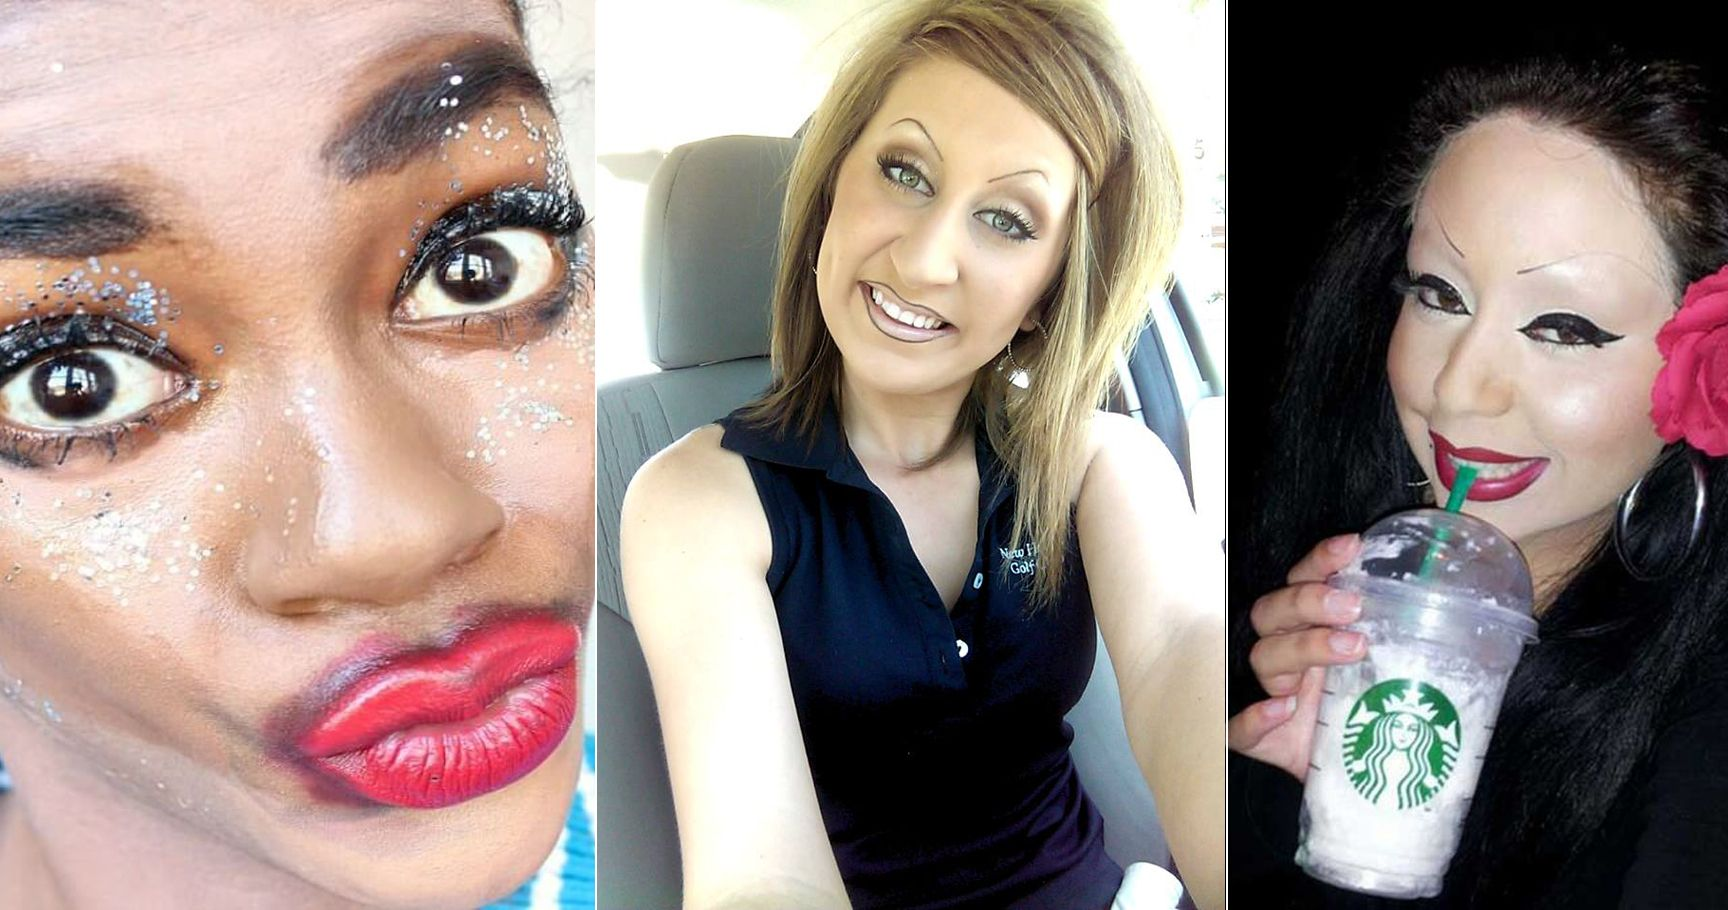 15 Makeup Fails That Are Hard To Look At